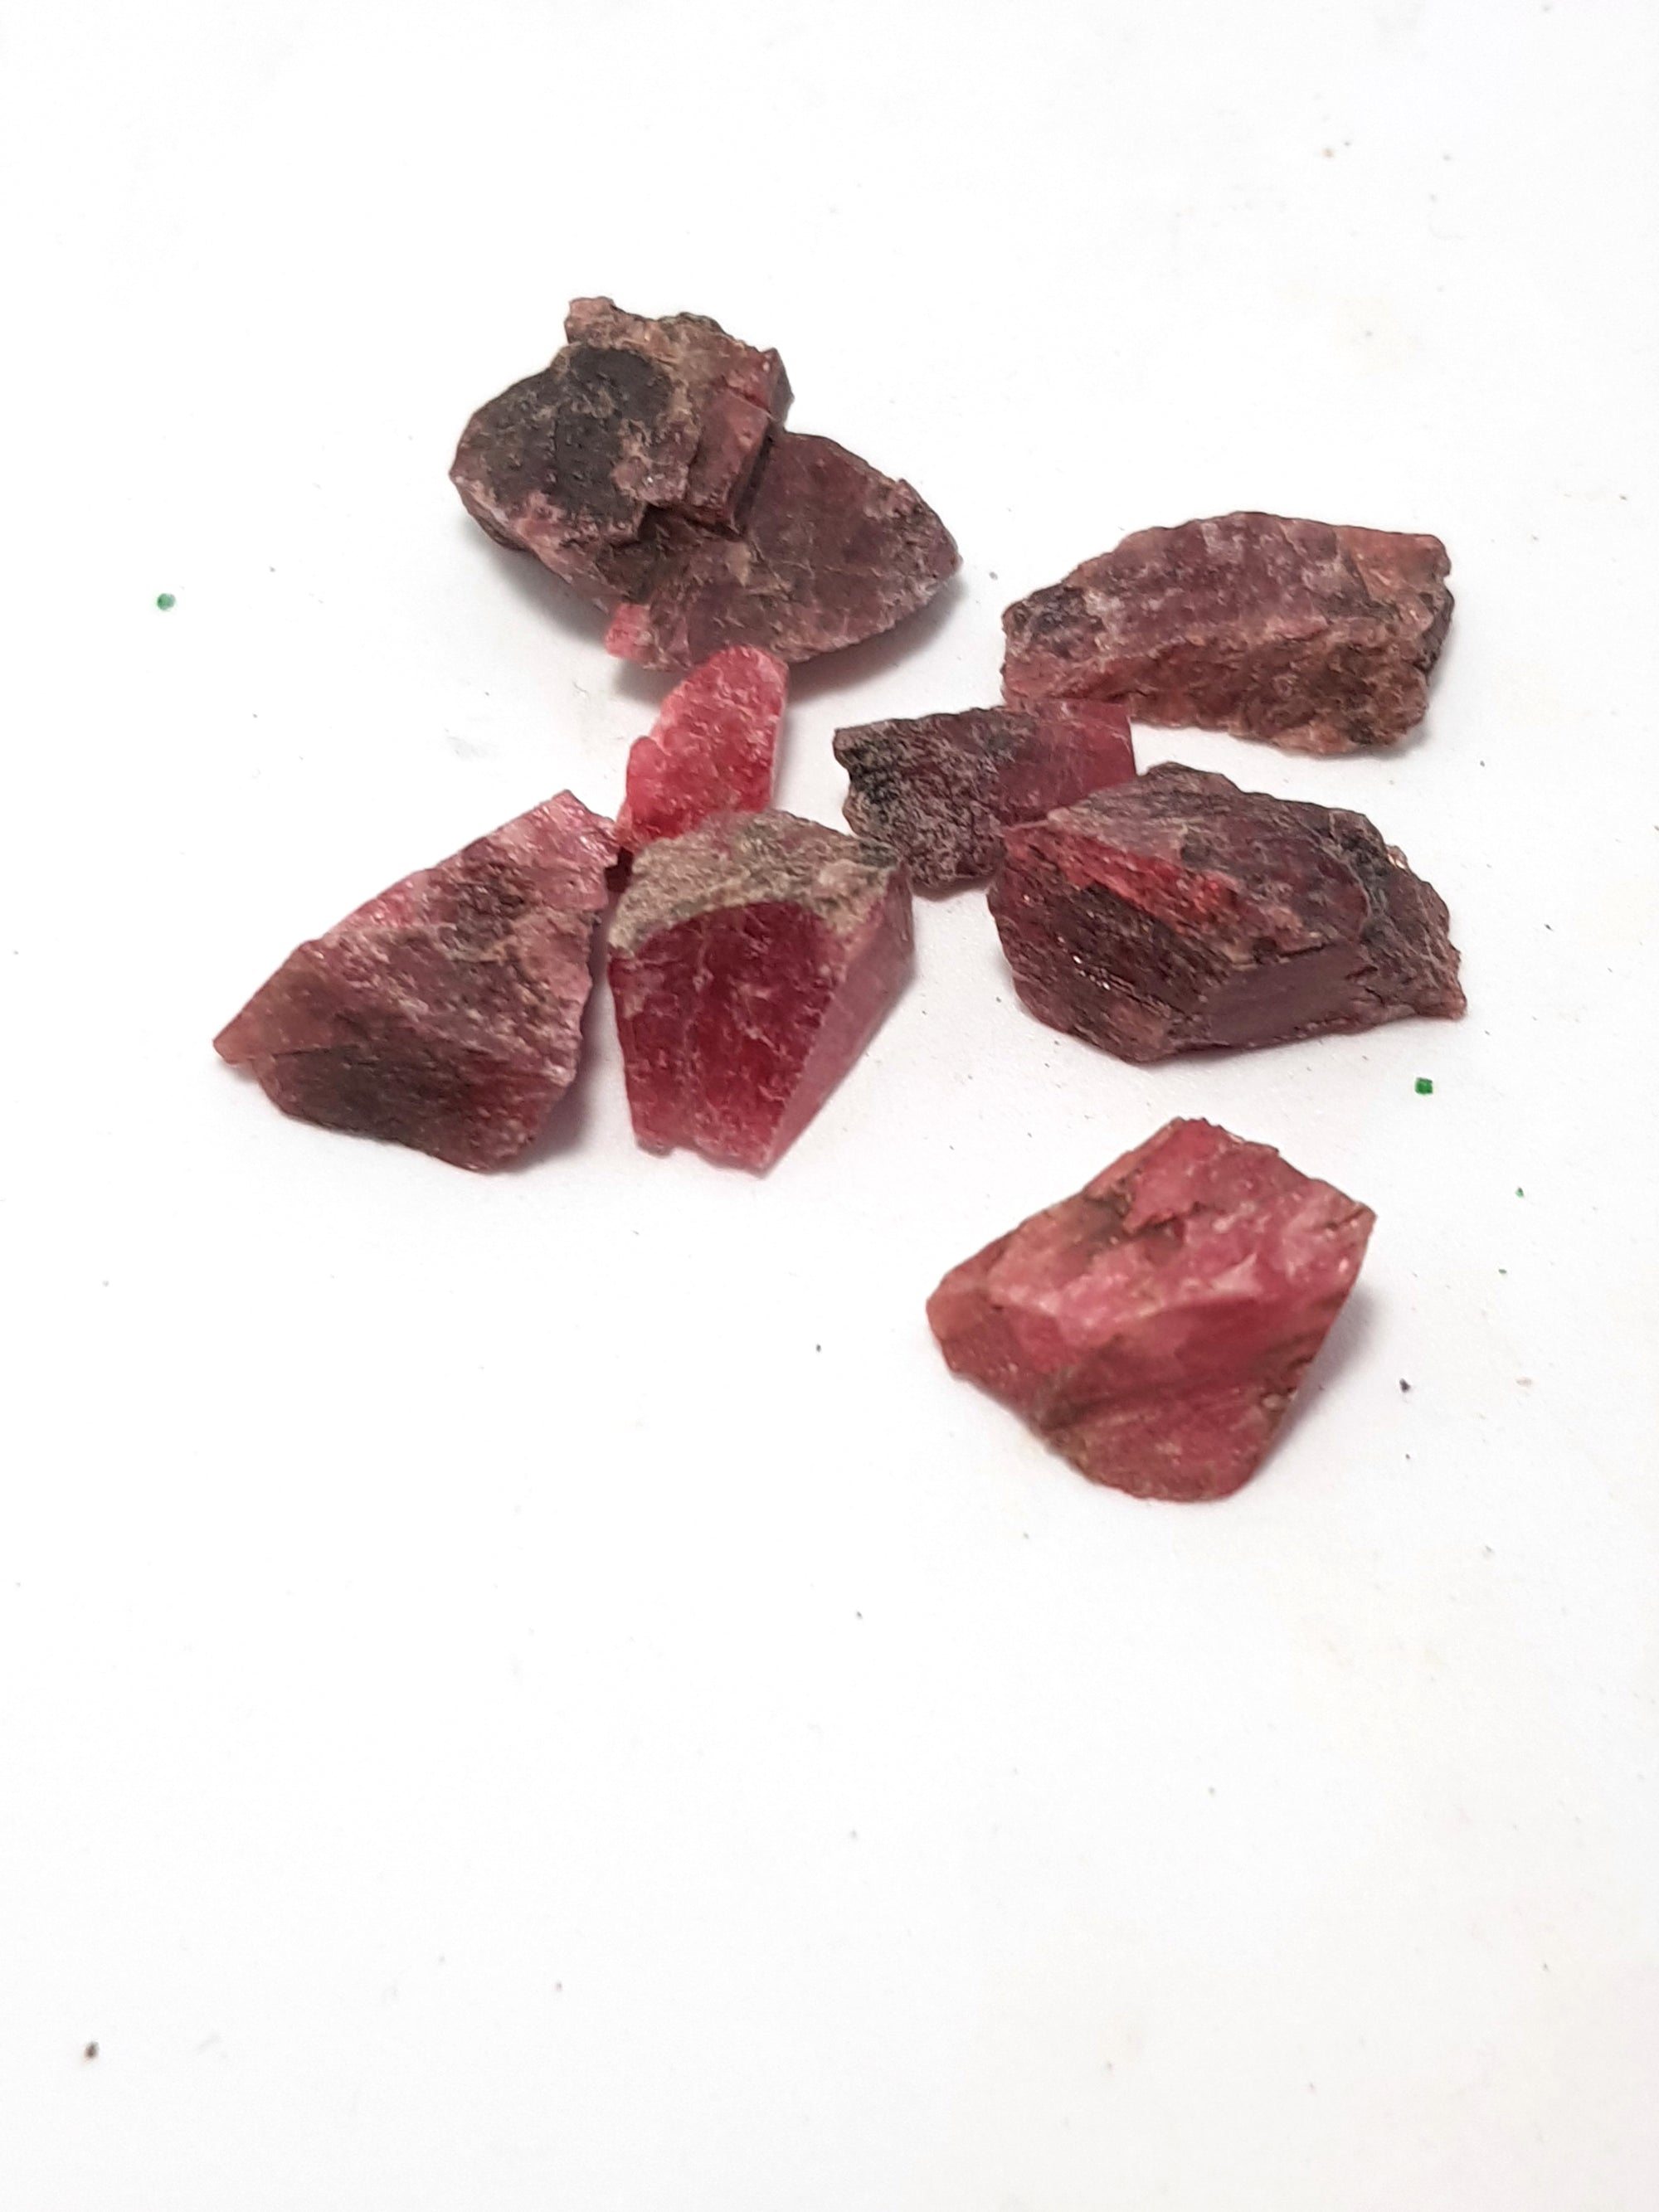 raw chips of rhodonite. They are a very dark pink.